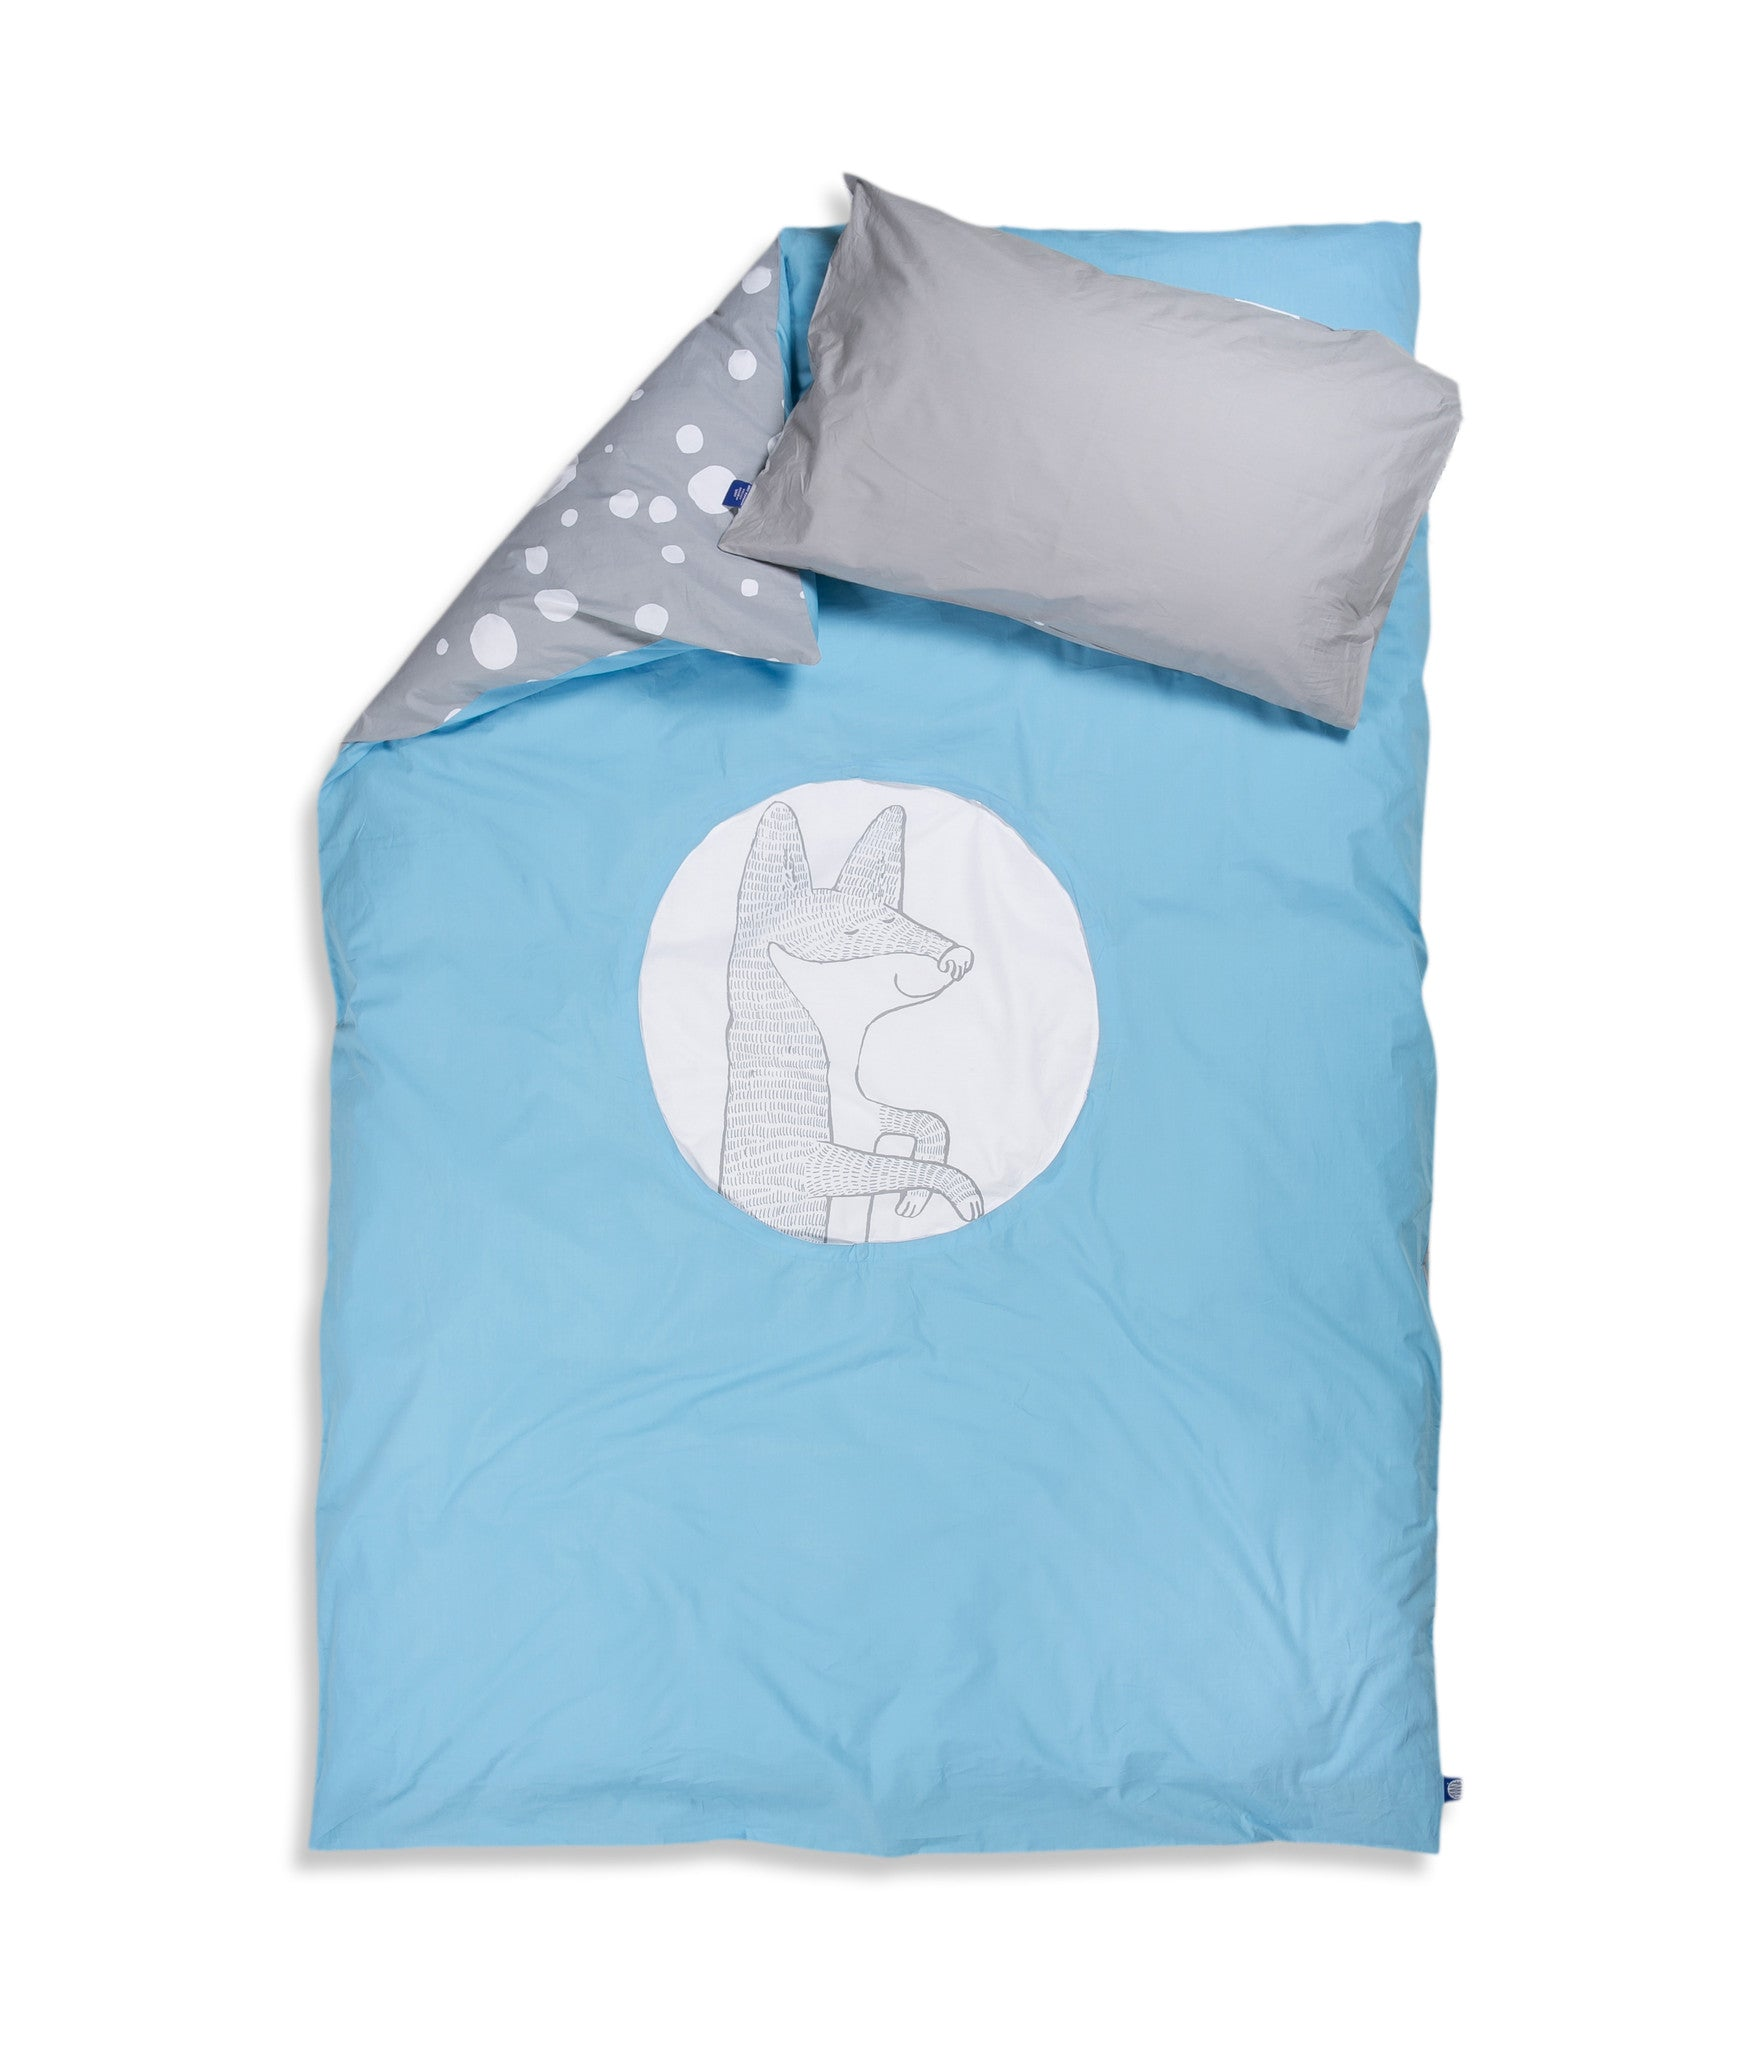 Organic cotton single bed set. Kids bedding. Grey pillow case and blue duvet cover with fox. Dotted pattern bed linen. Customised bedding.